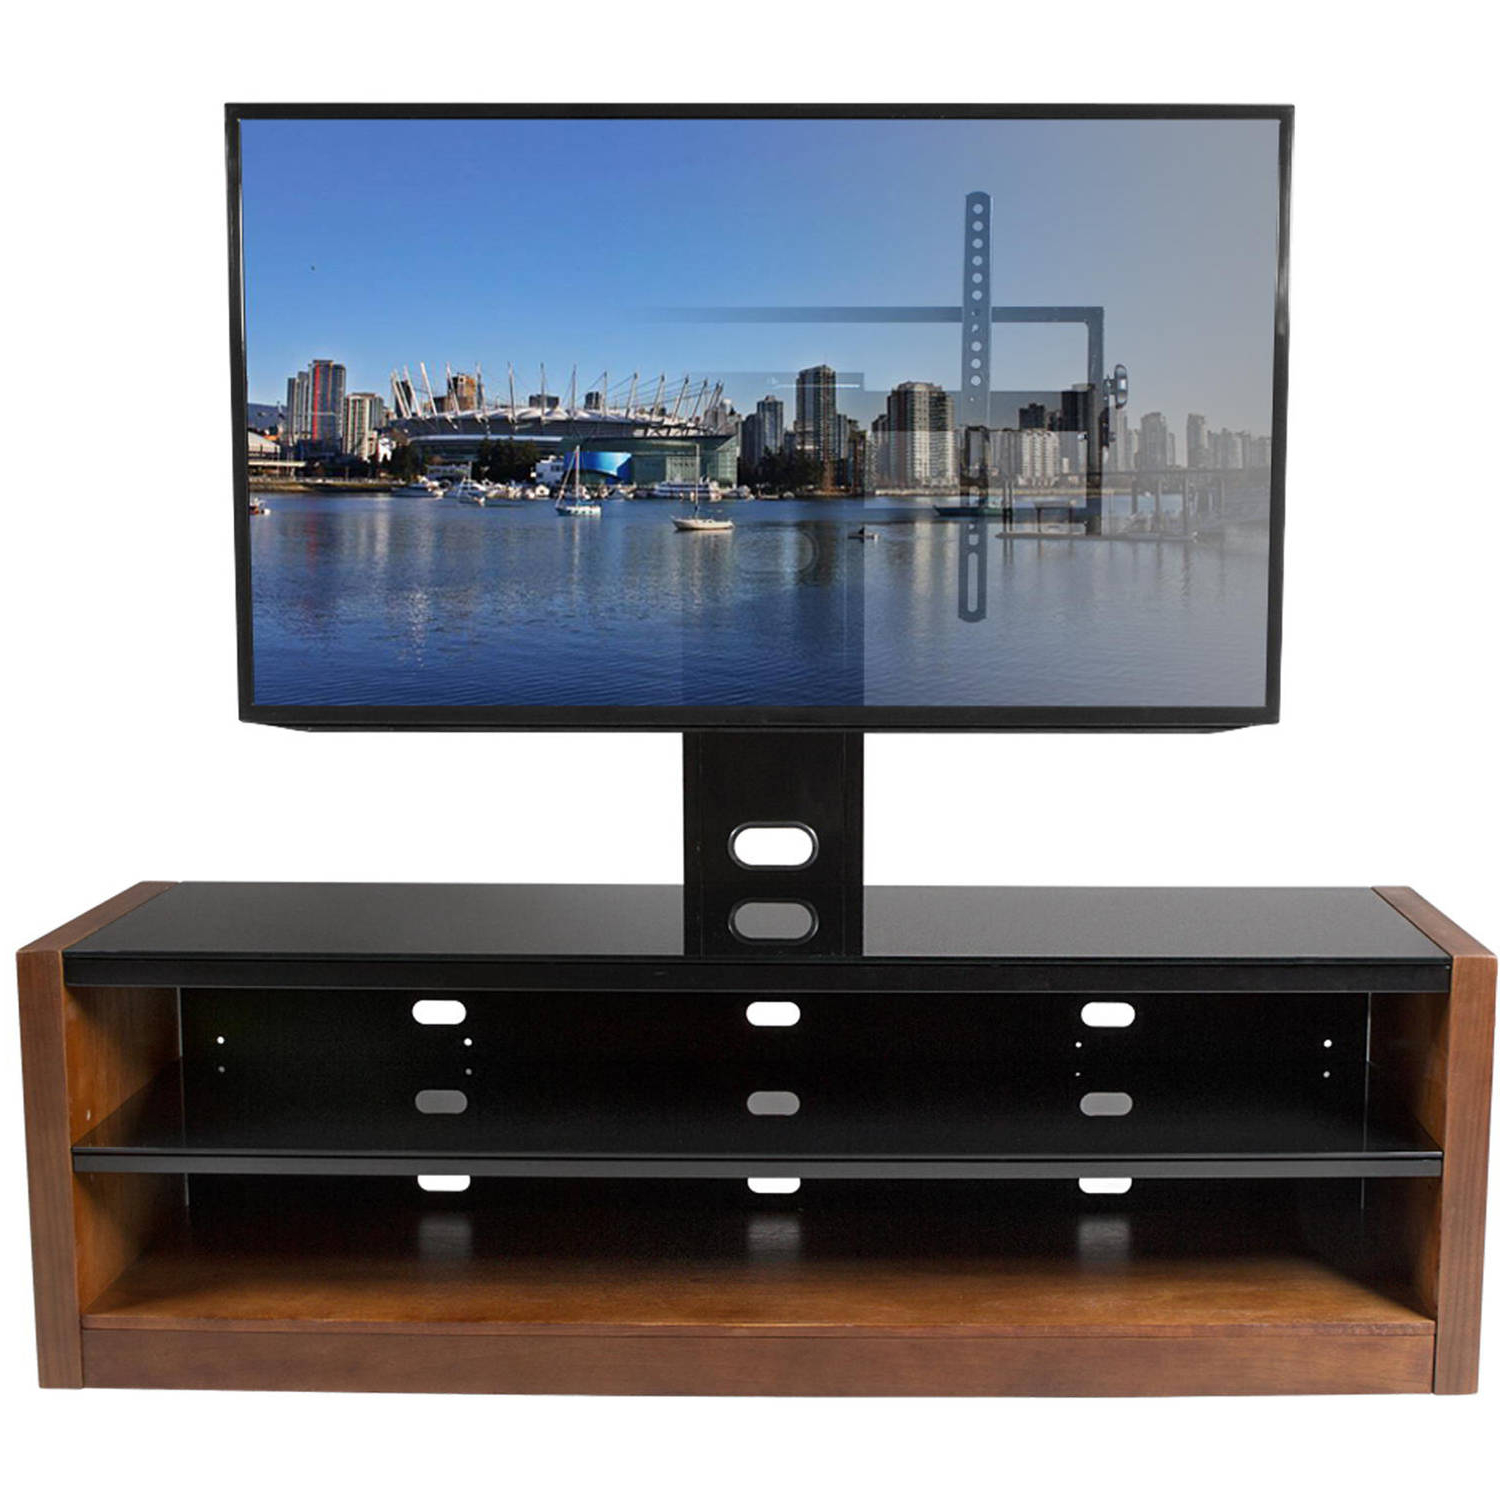 Kanto Mesa 64 Plus Tv Stand With Tilt And Swivel Mount For Displays Regarding Trendy Tv Stands Swivel Mount (Gallery 17 of 20)